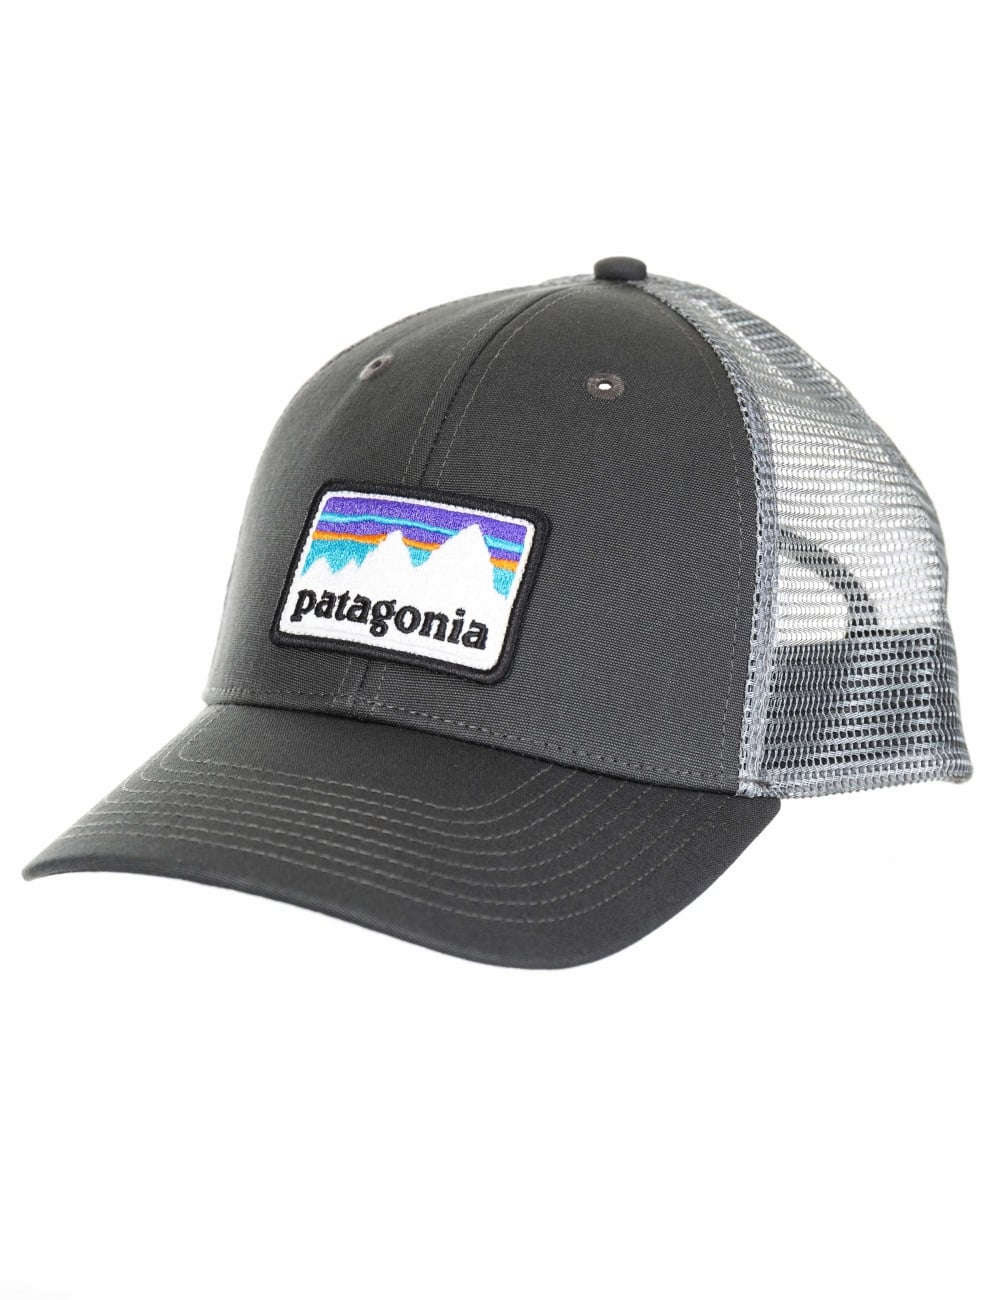 108374dc06a Patagonia Shop Sticker Patch LoPro Trucker Hat - Forge Grey - Hat ...